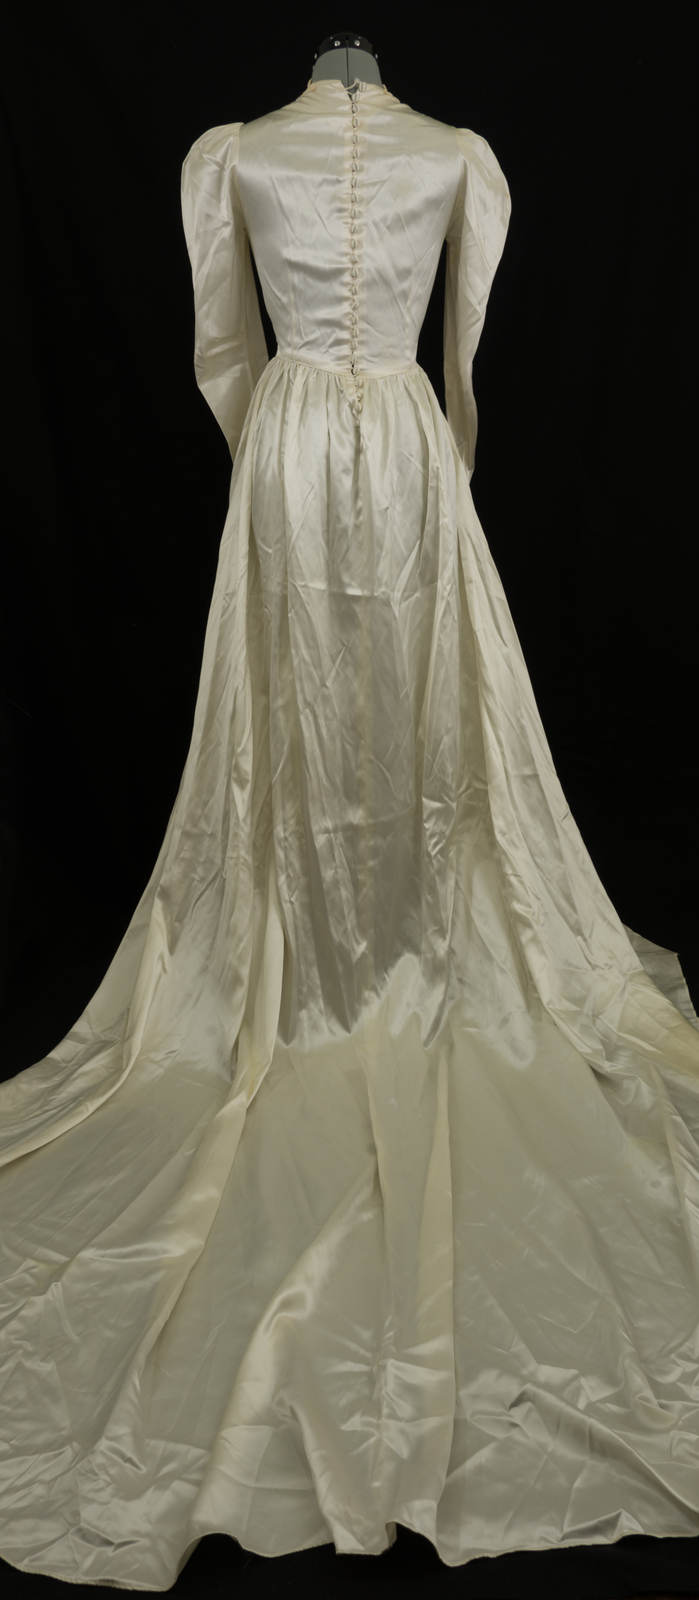 Vintage Wedding Dresses Art Deco : Vintage s art deco liquid satin ivory wedding dress with train